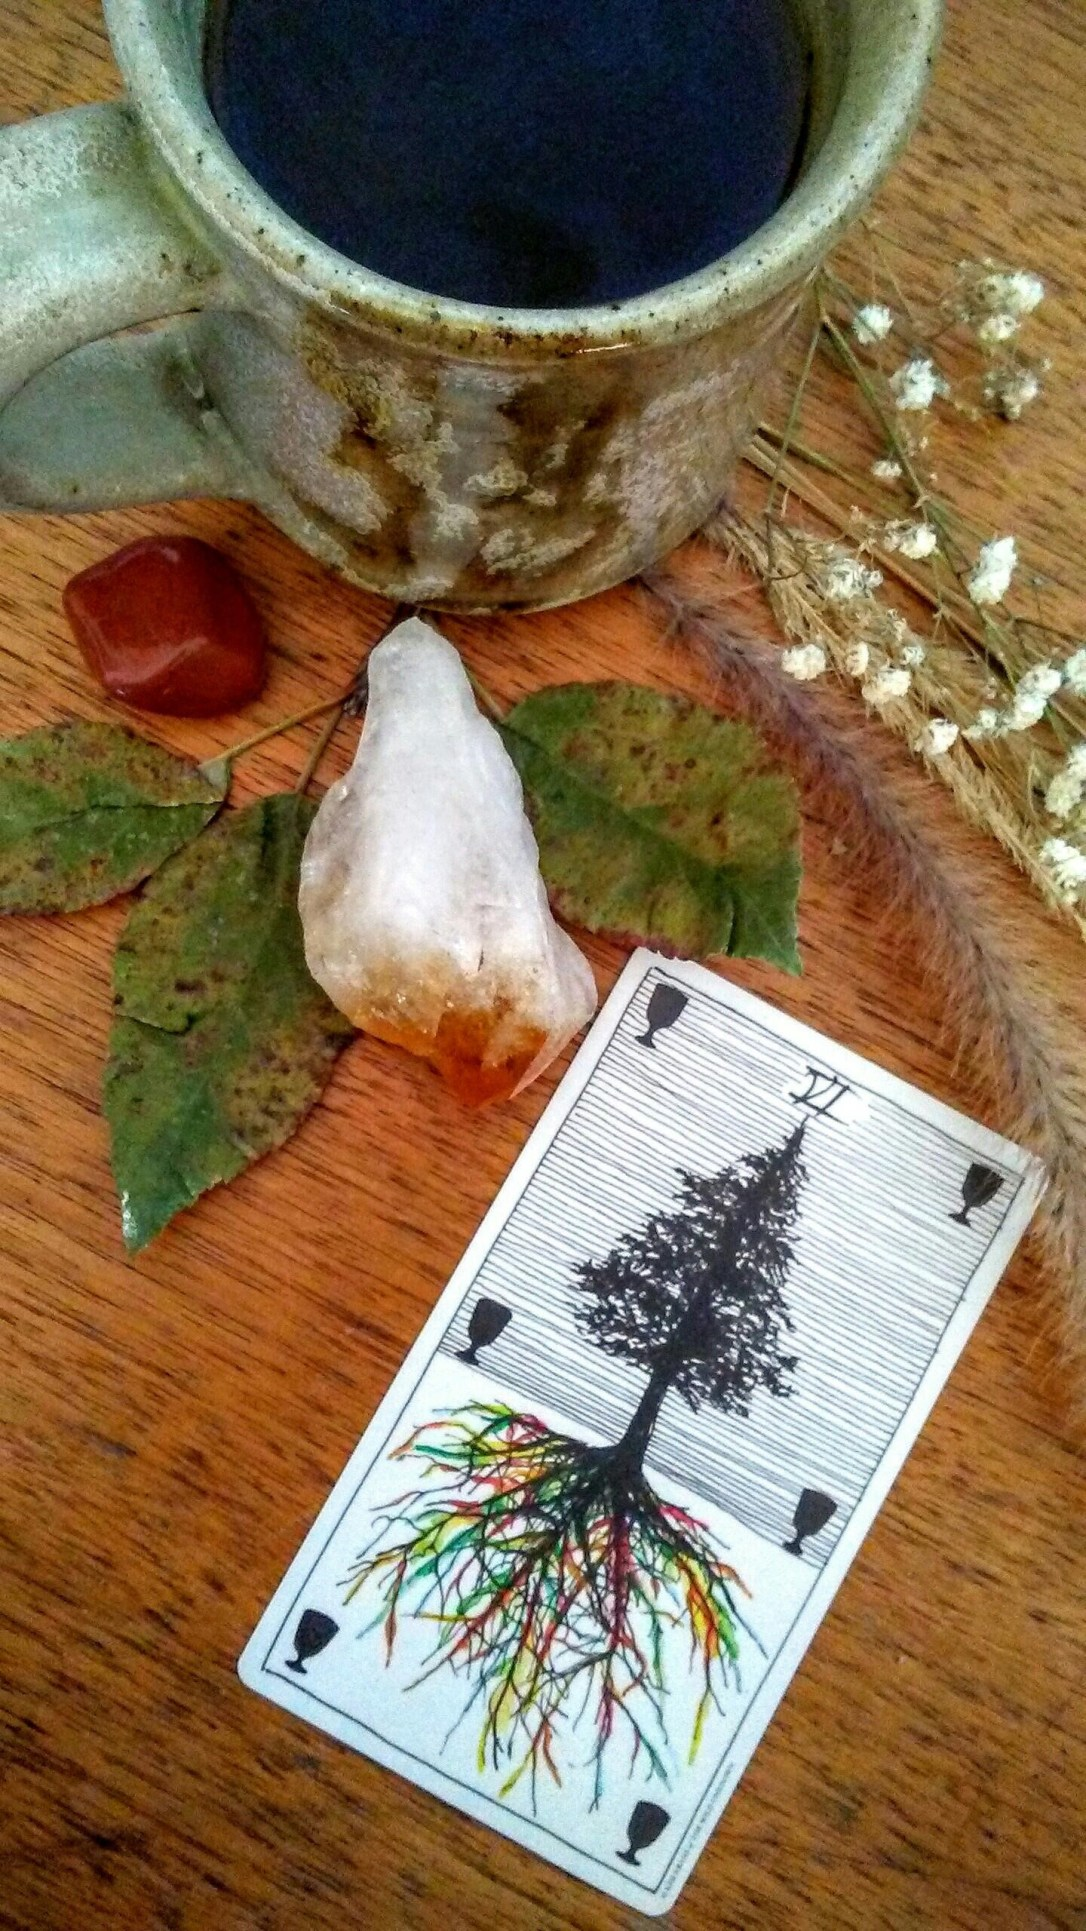 Tarot card on altar with crystal, stone, herbs, tea